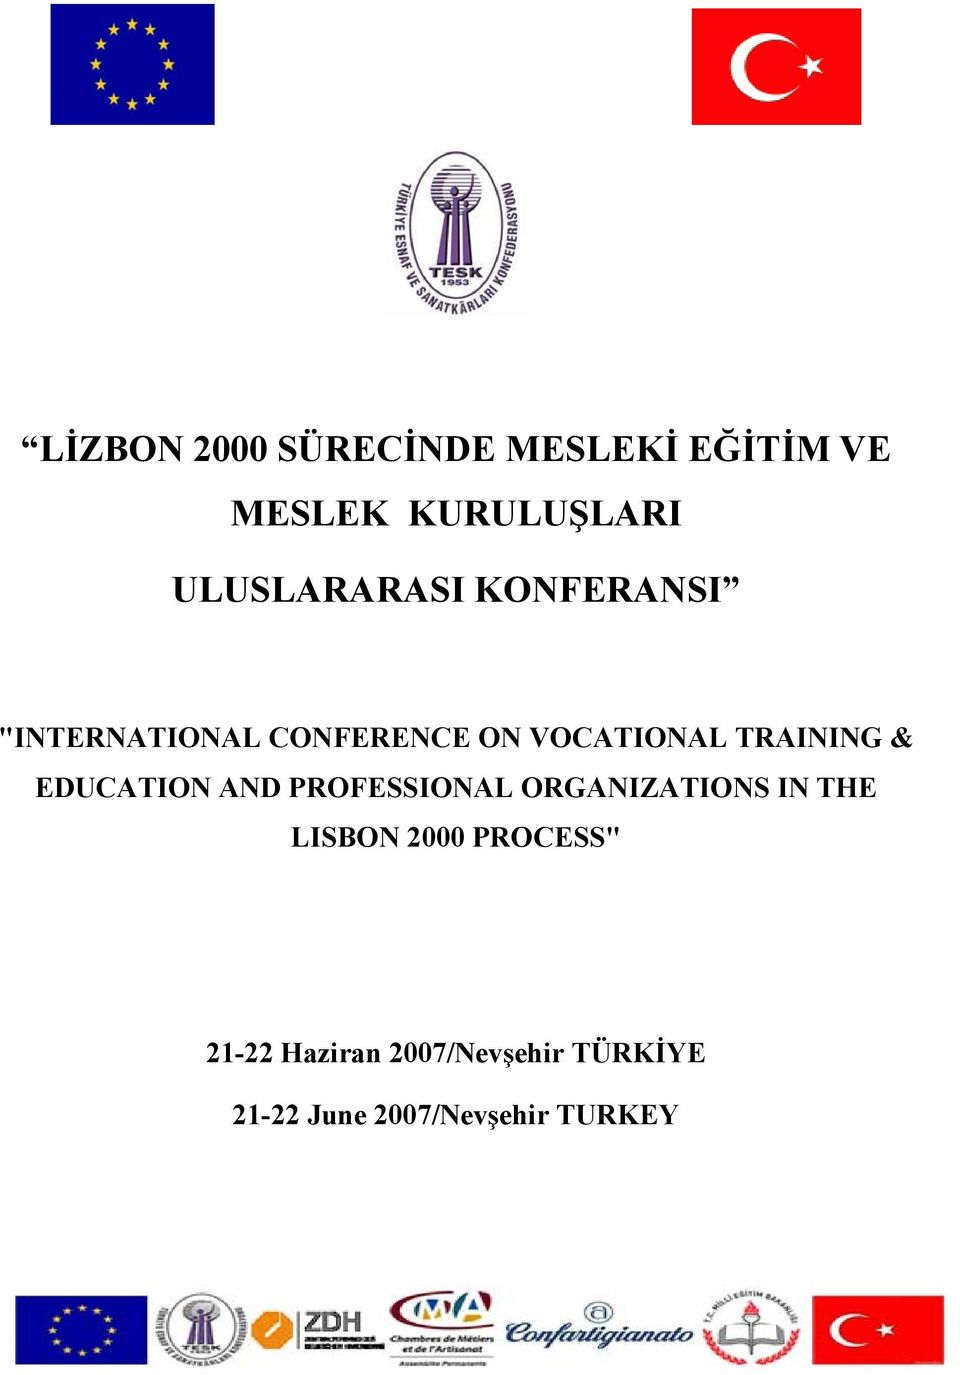 TRAINING & EDUCATION AND PROFESSIONAL ORGANIZATIONS IN THE LISBON